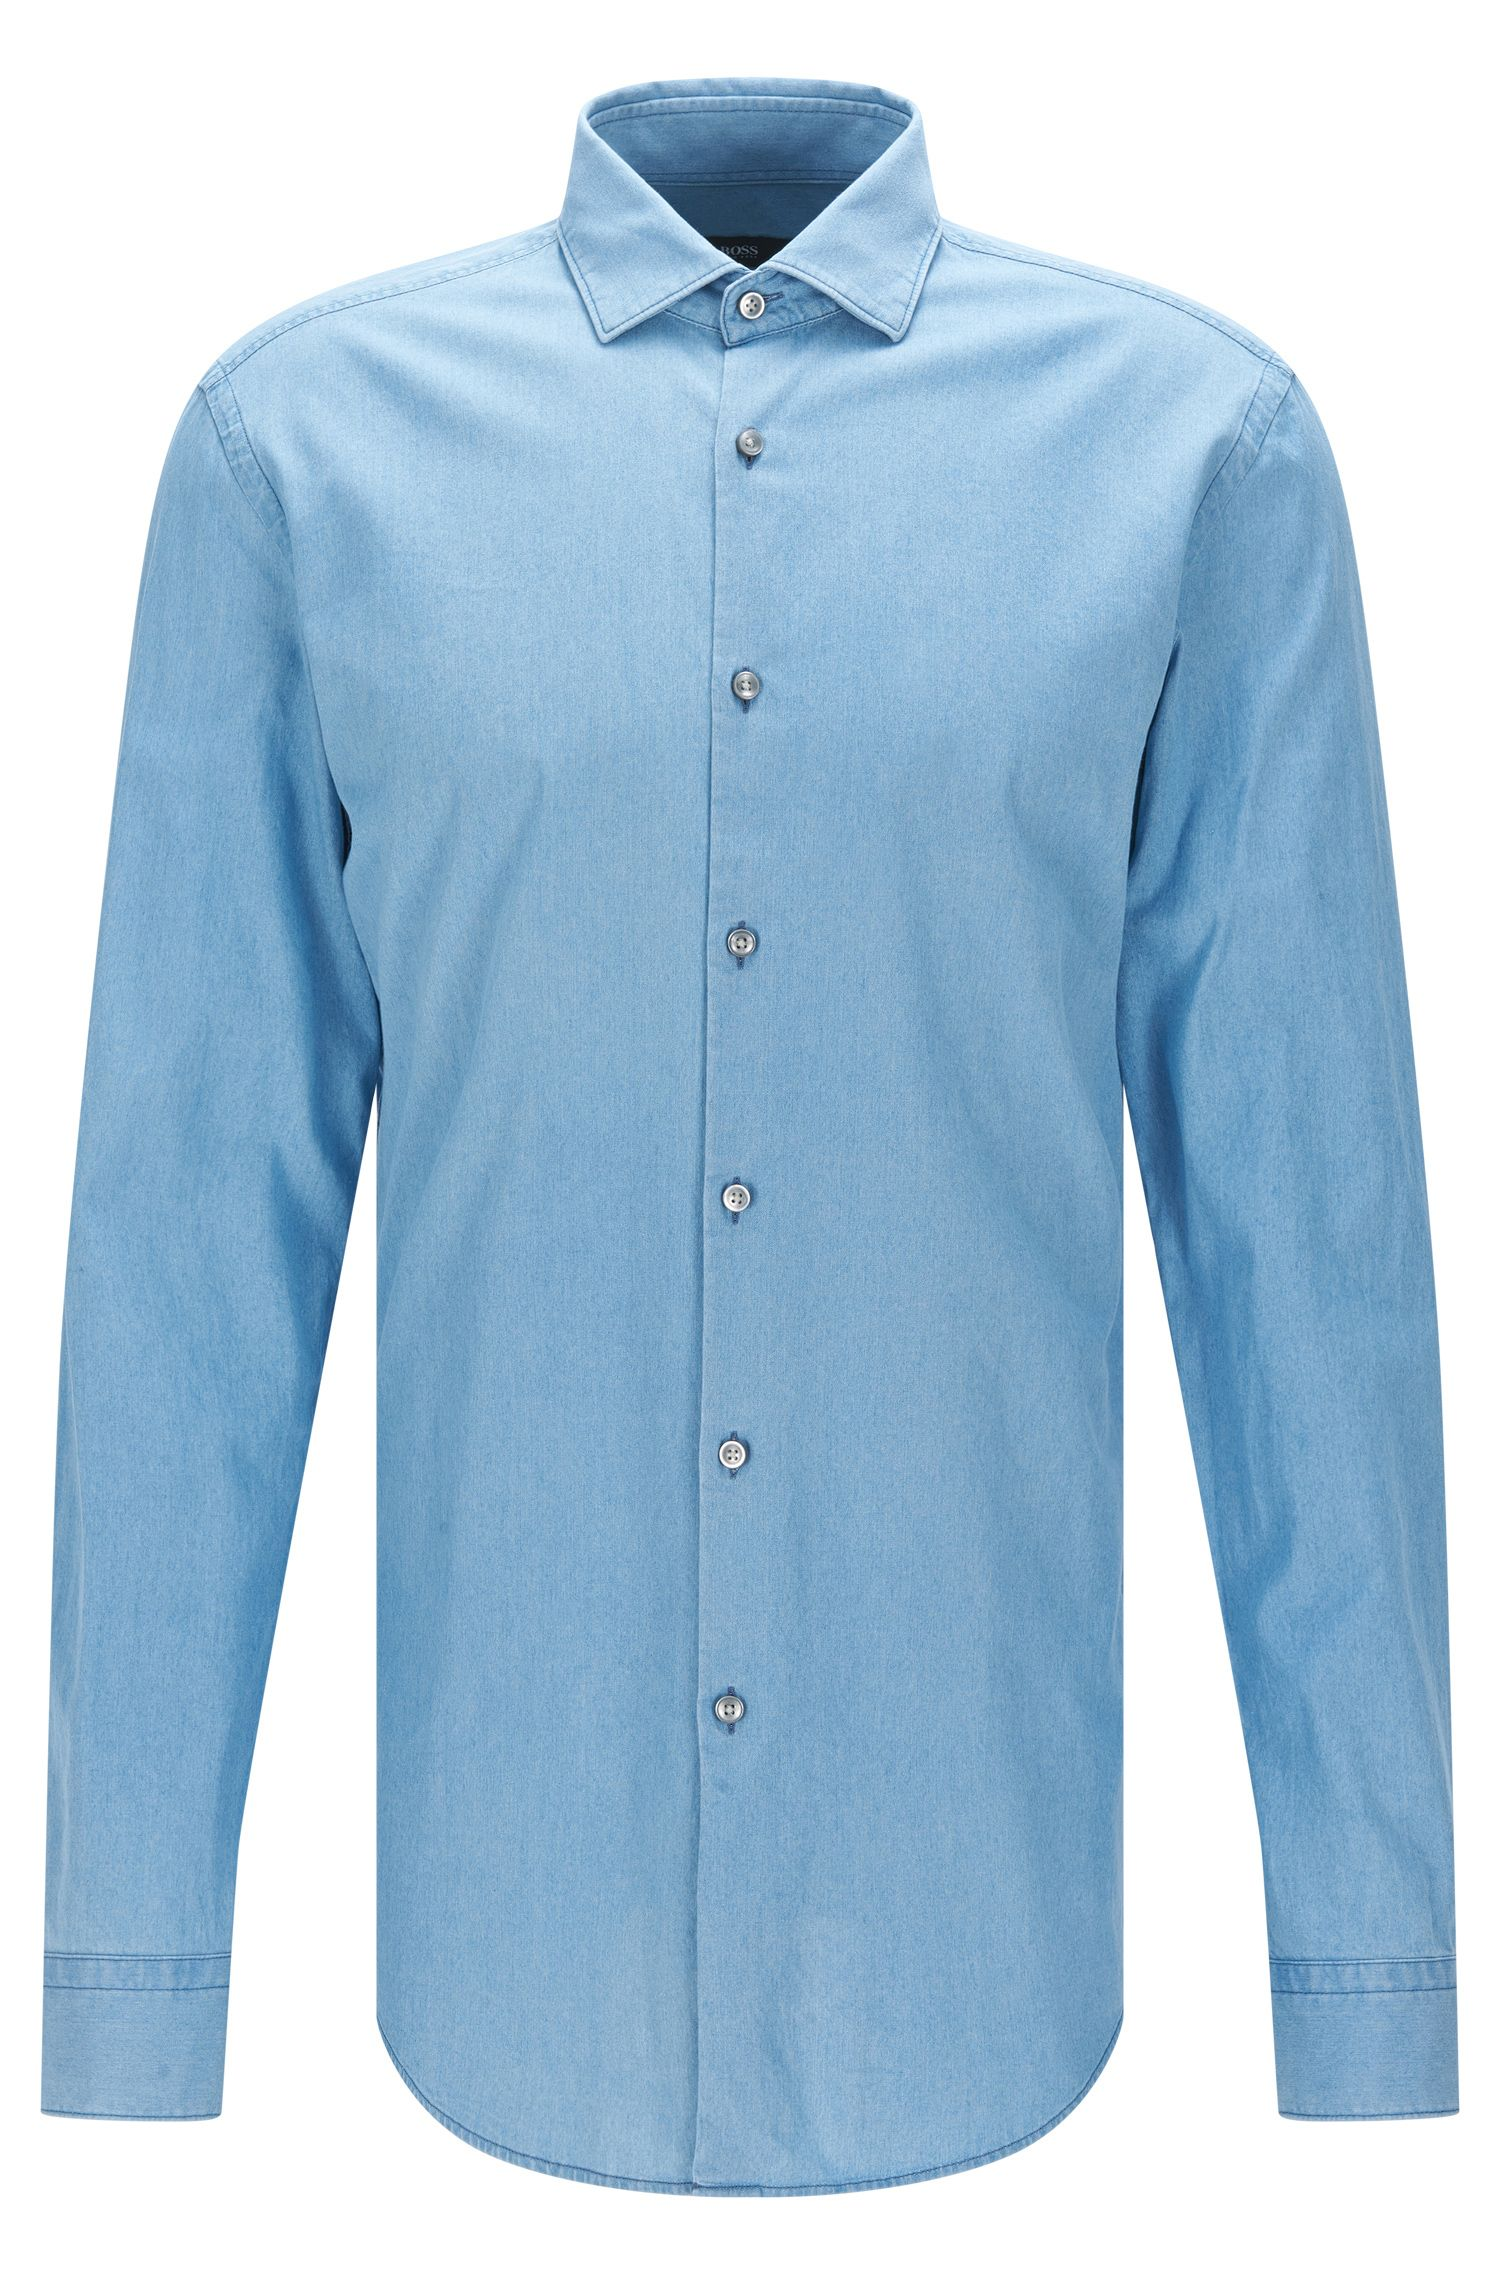 Camicia regular fit in morbido denim italiano